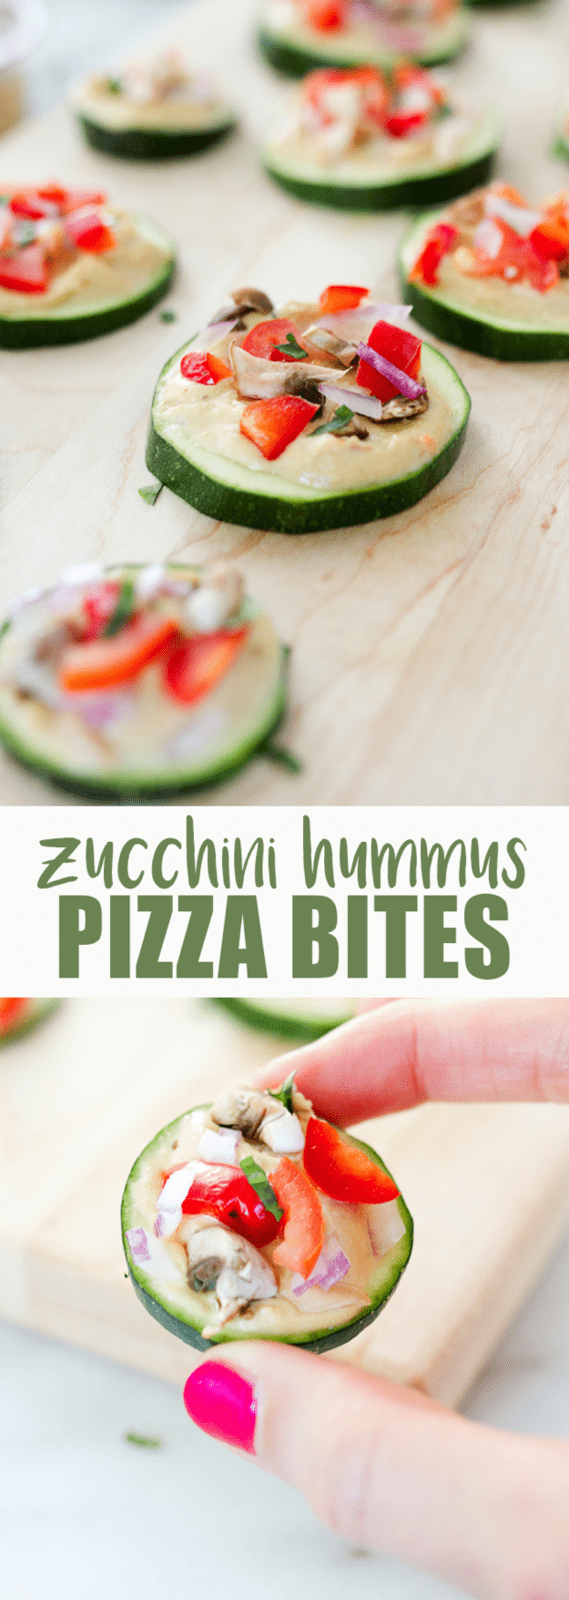 Mini Zucchini Hummus Pizza Bites -- Satisfy your pizza craving with these healthy mini zucchini pizza bites. Raw zucchini serves as the crust while hummus and fresh veggie toppings give the bites that pizza flavor you crave.